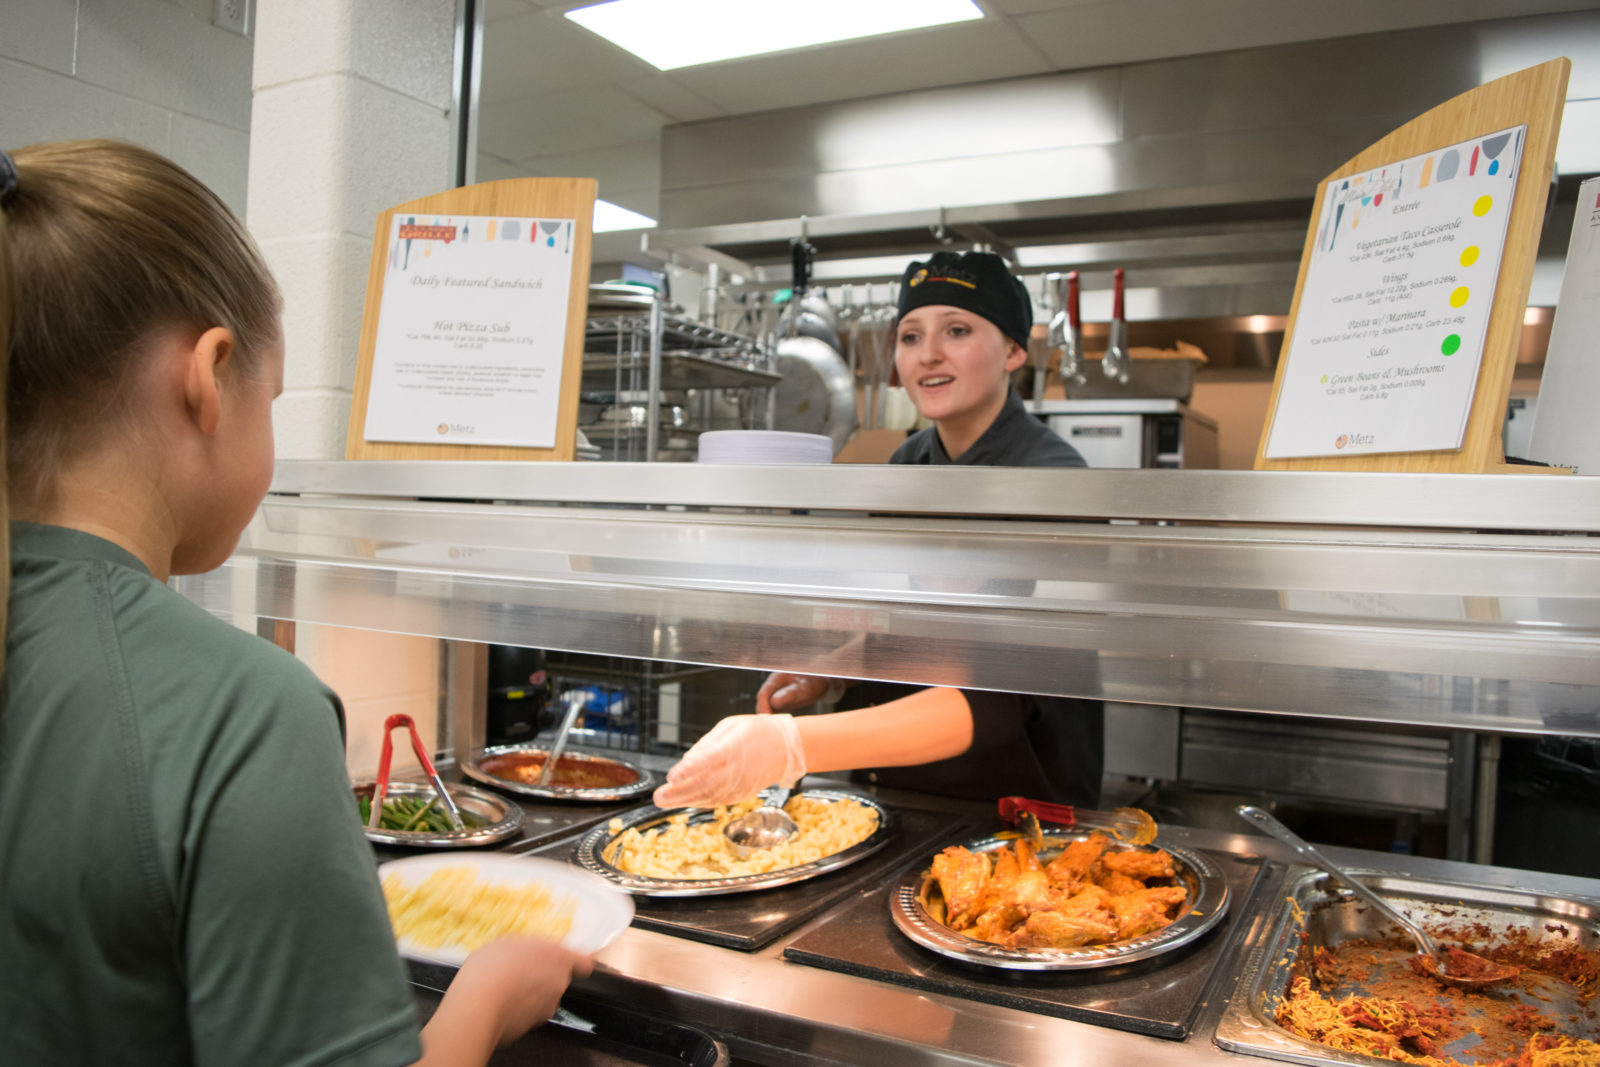 Students receive their lunch at the warm plate section.